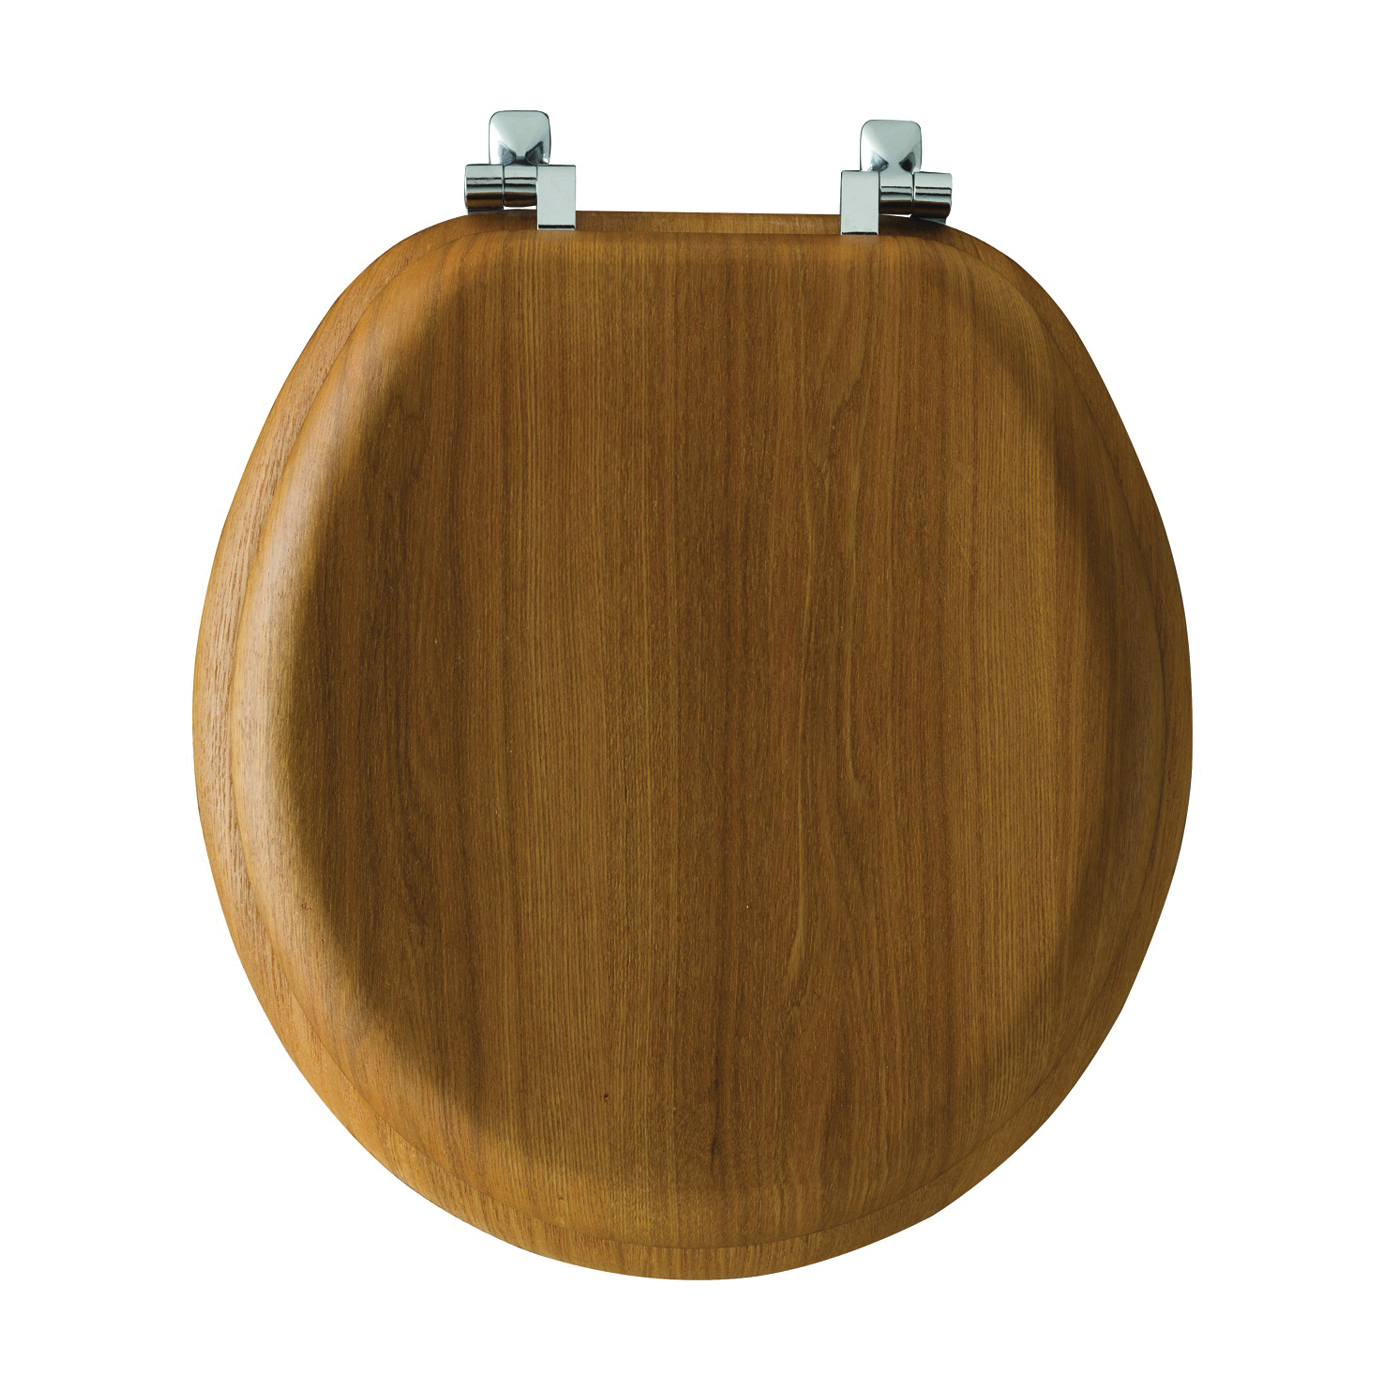 Picture of Mayfair 9601CP378 Toilet Seat, Round, Wood Veneer, Natural Oak